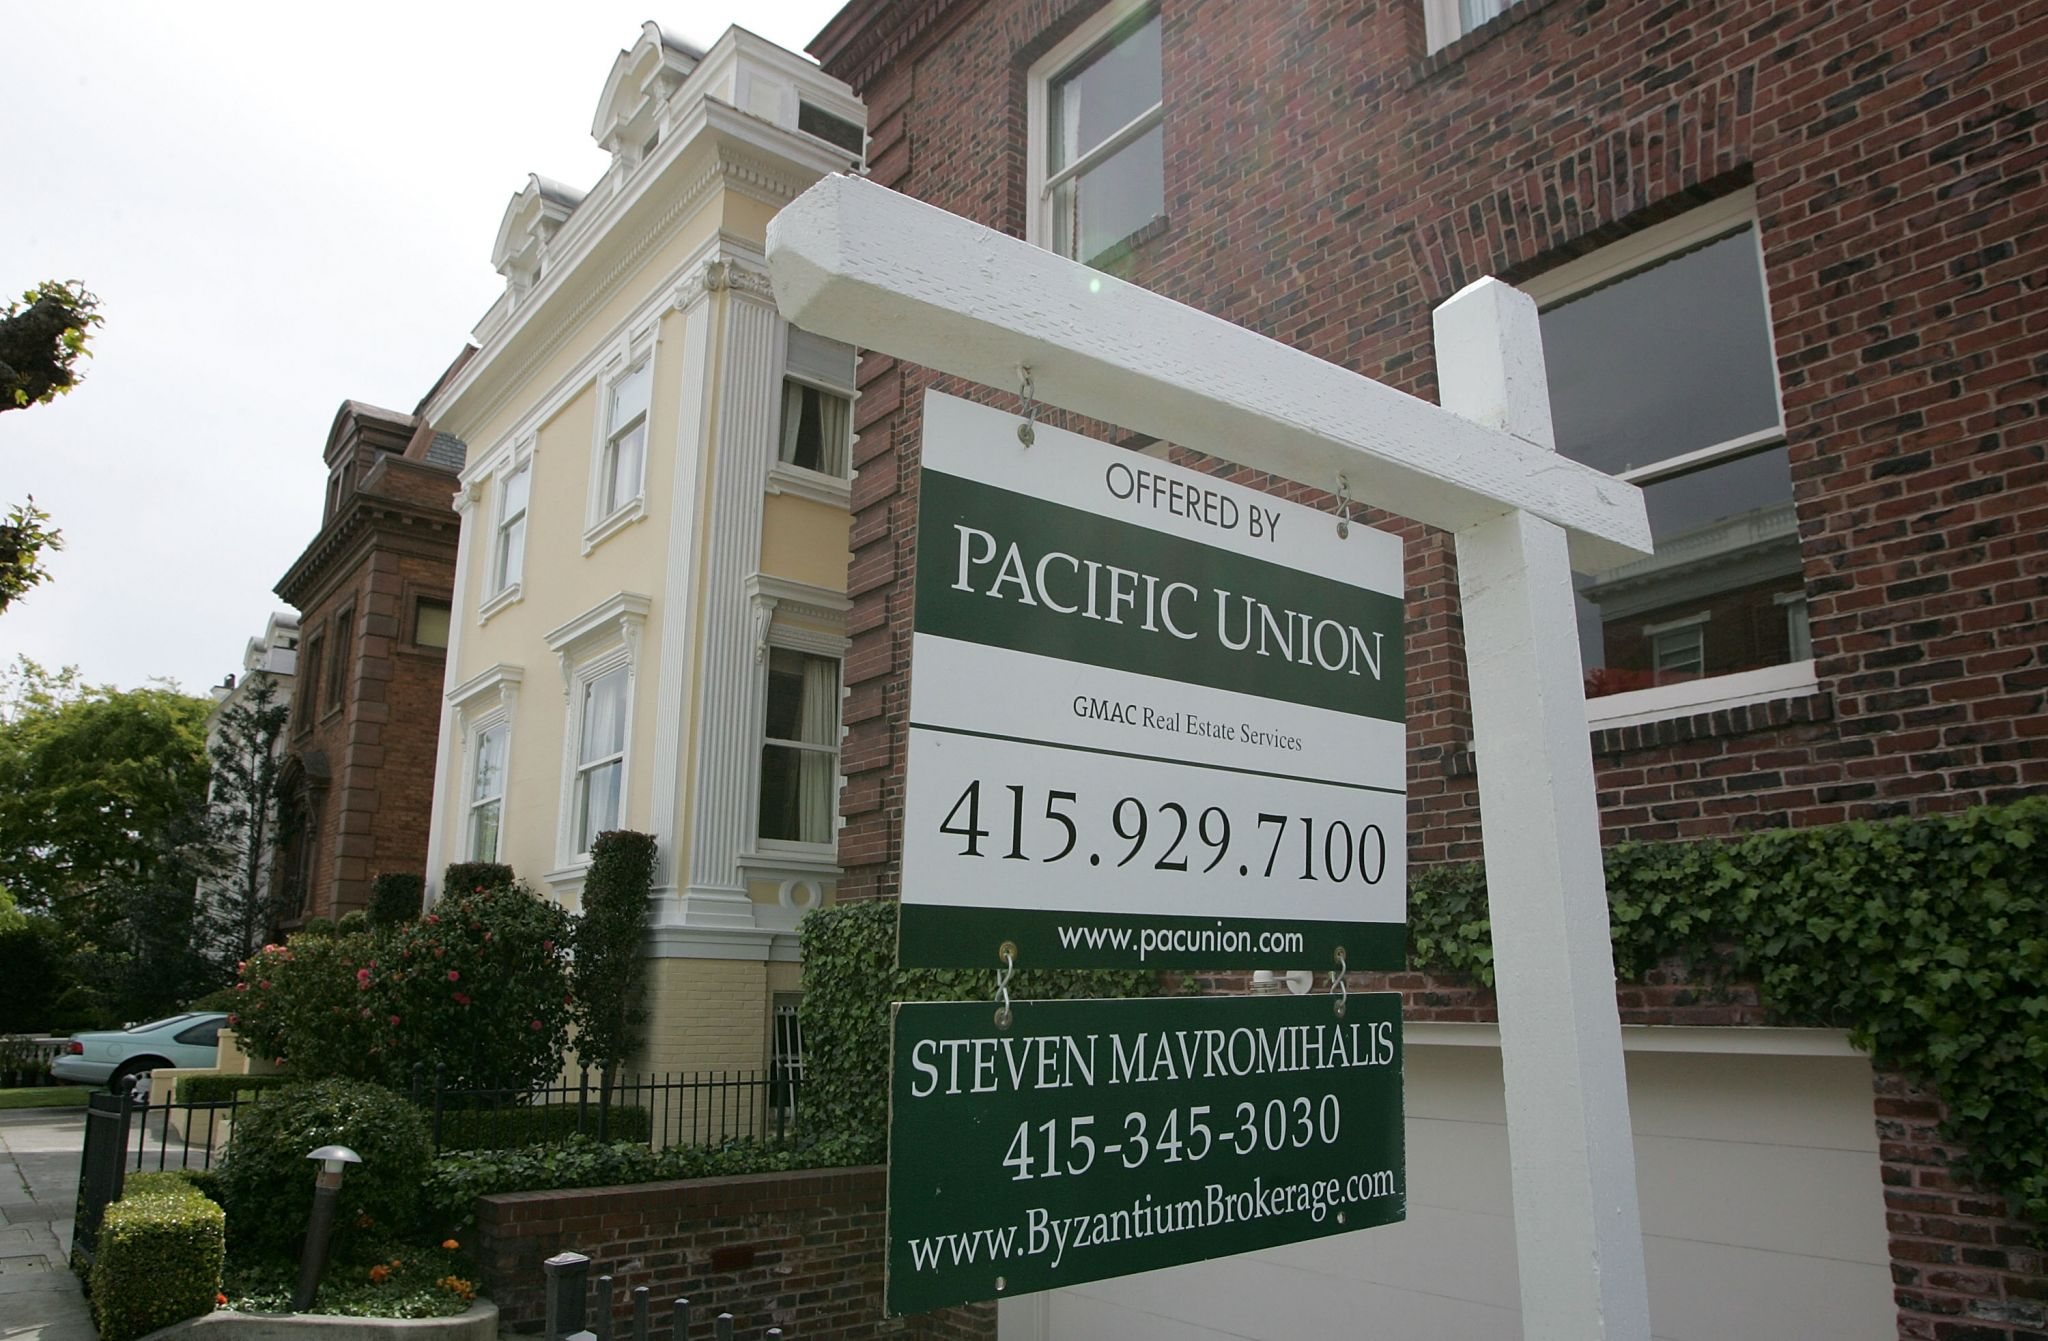 For-sale homes in San Francisco hit recession-level high